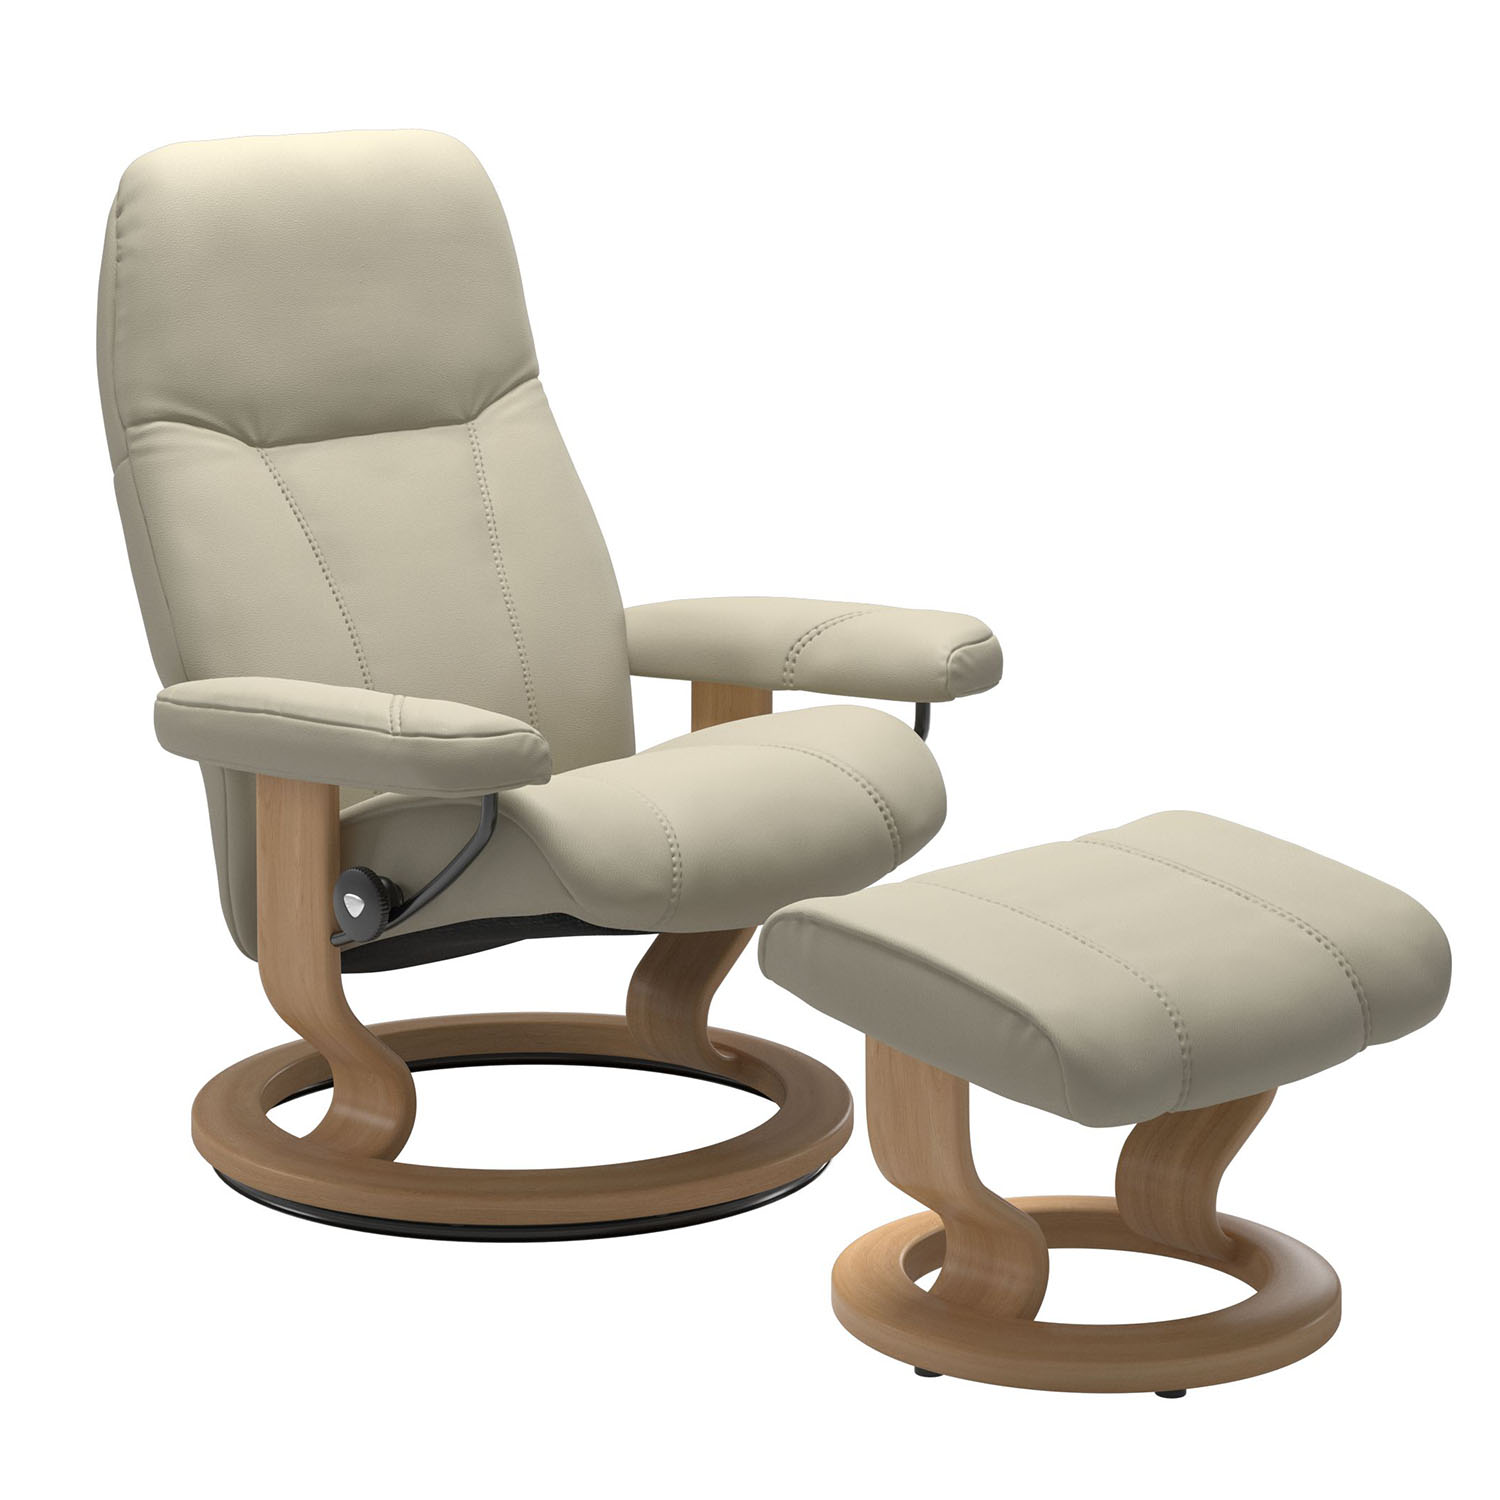 Stressless Consul Medium Chair & Stool - Batick Cream with Oak Classic Base